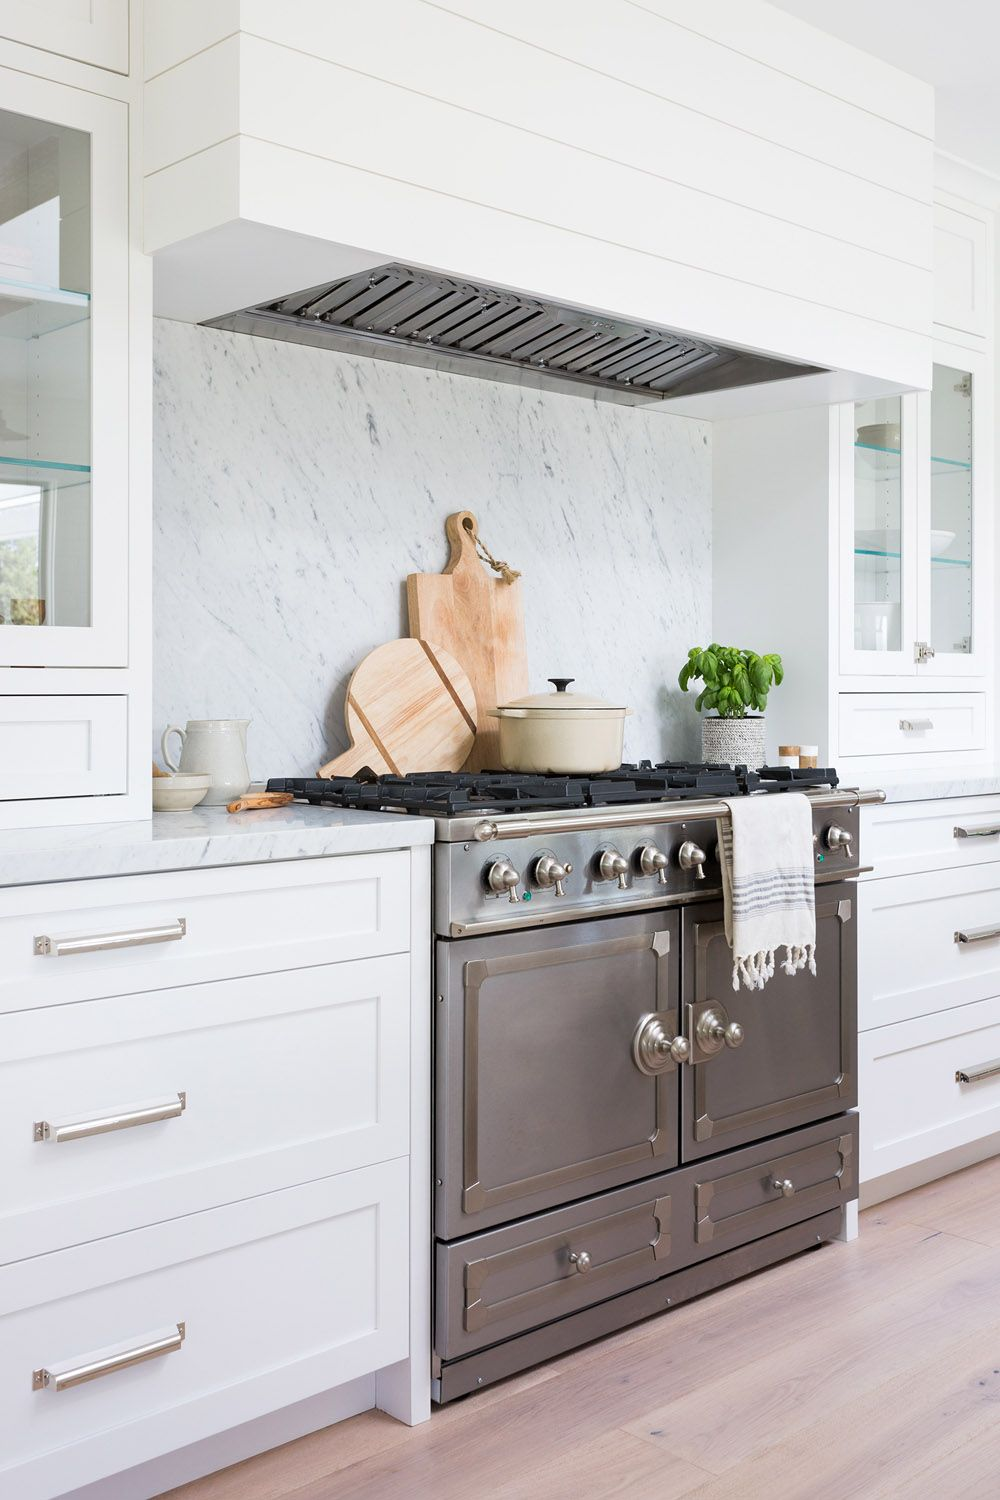 Nicole Salceda Aka Eyeforpretty Designs Her Dream Home In The Bay Area Rue Kitchen Interior Interior Design Kitchen Kitchen Inspirations